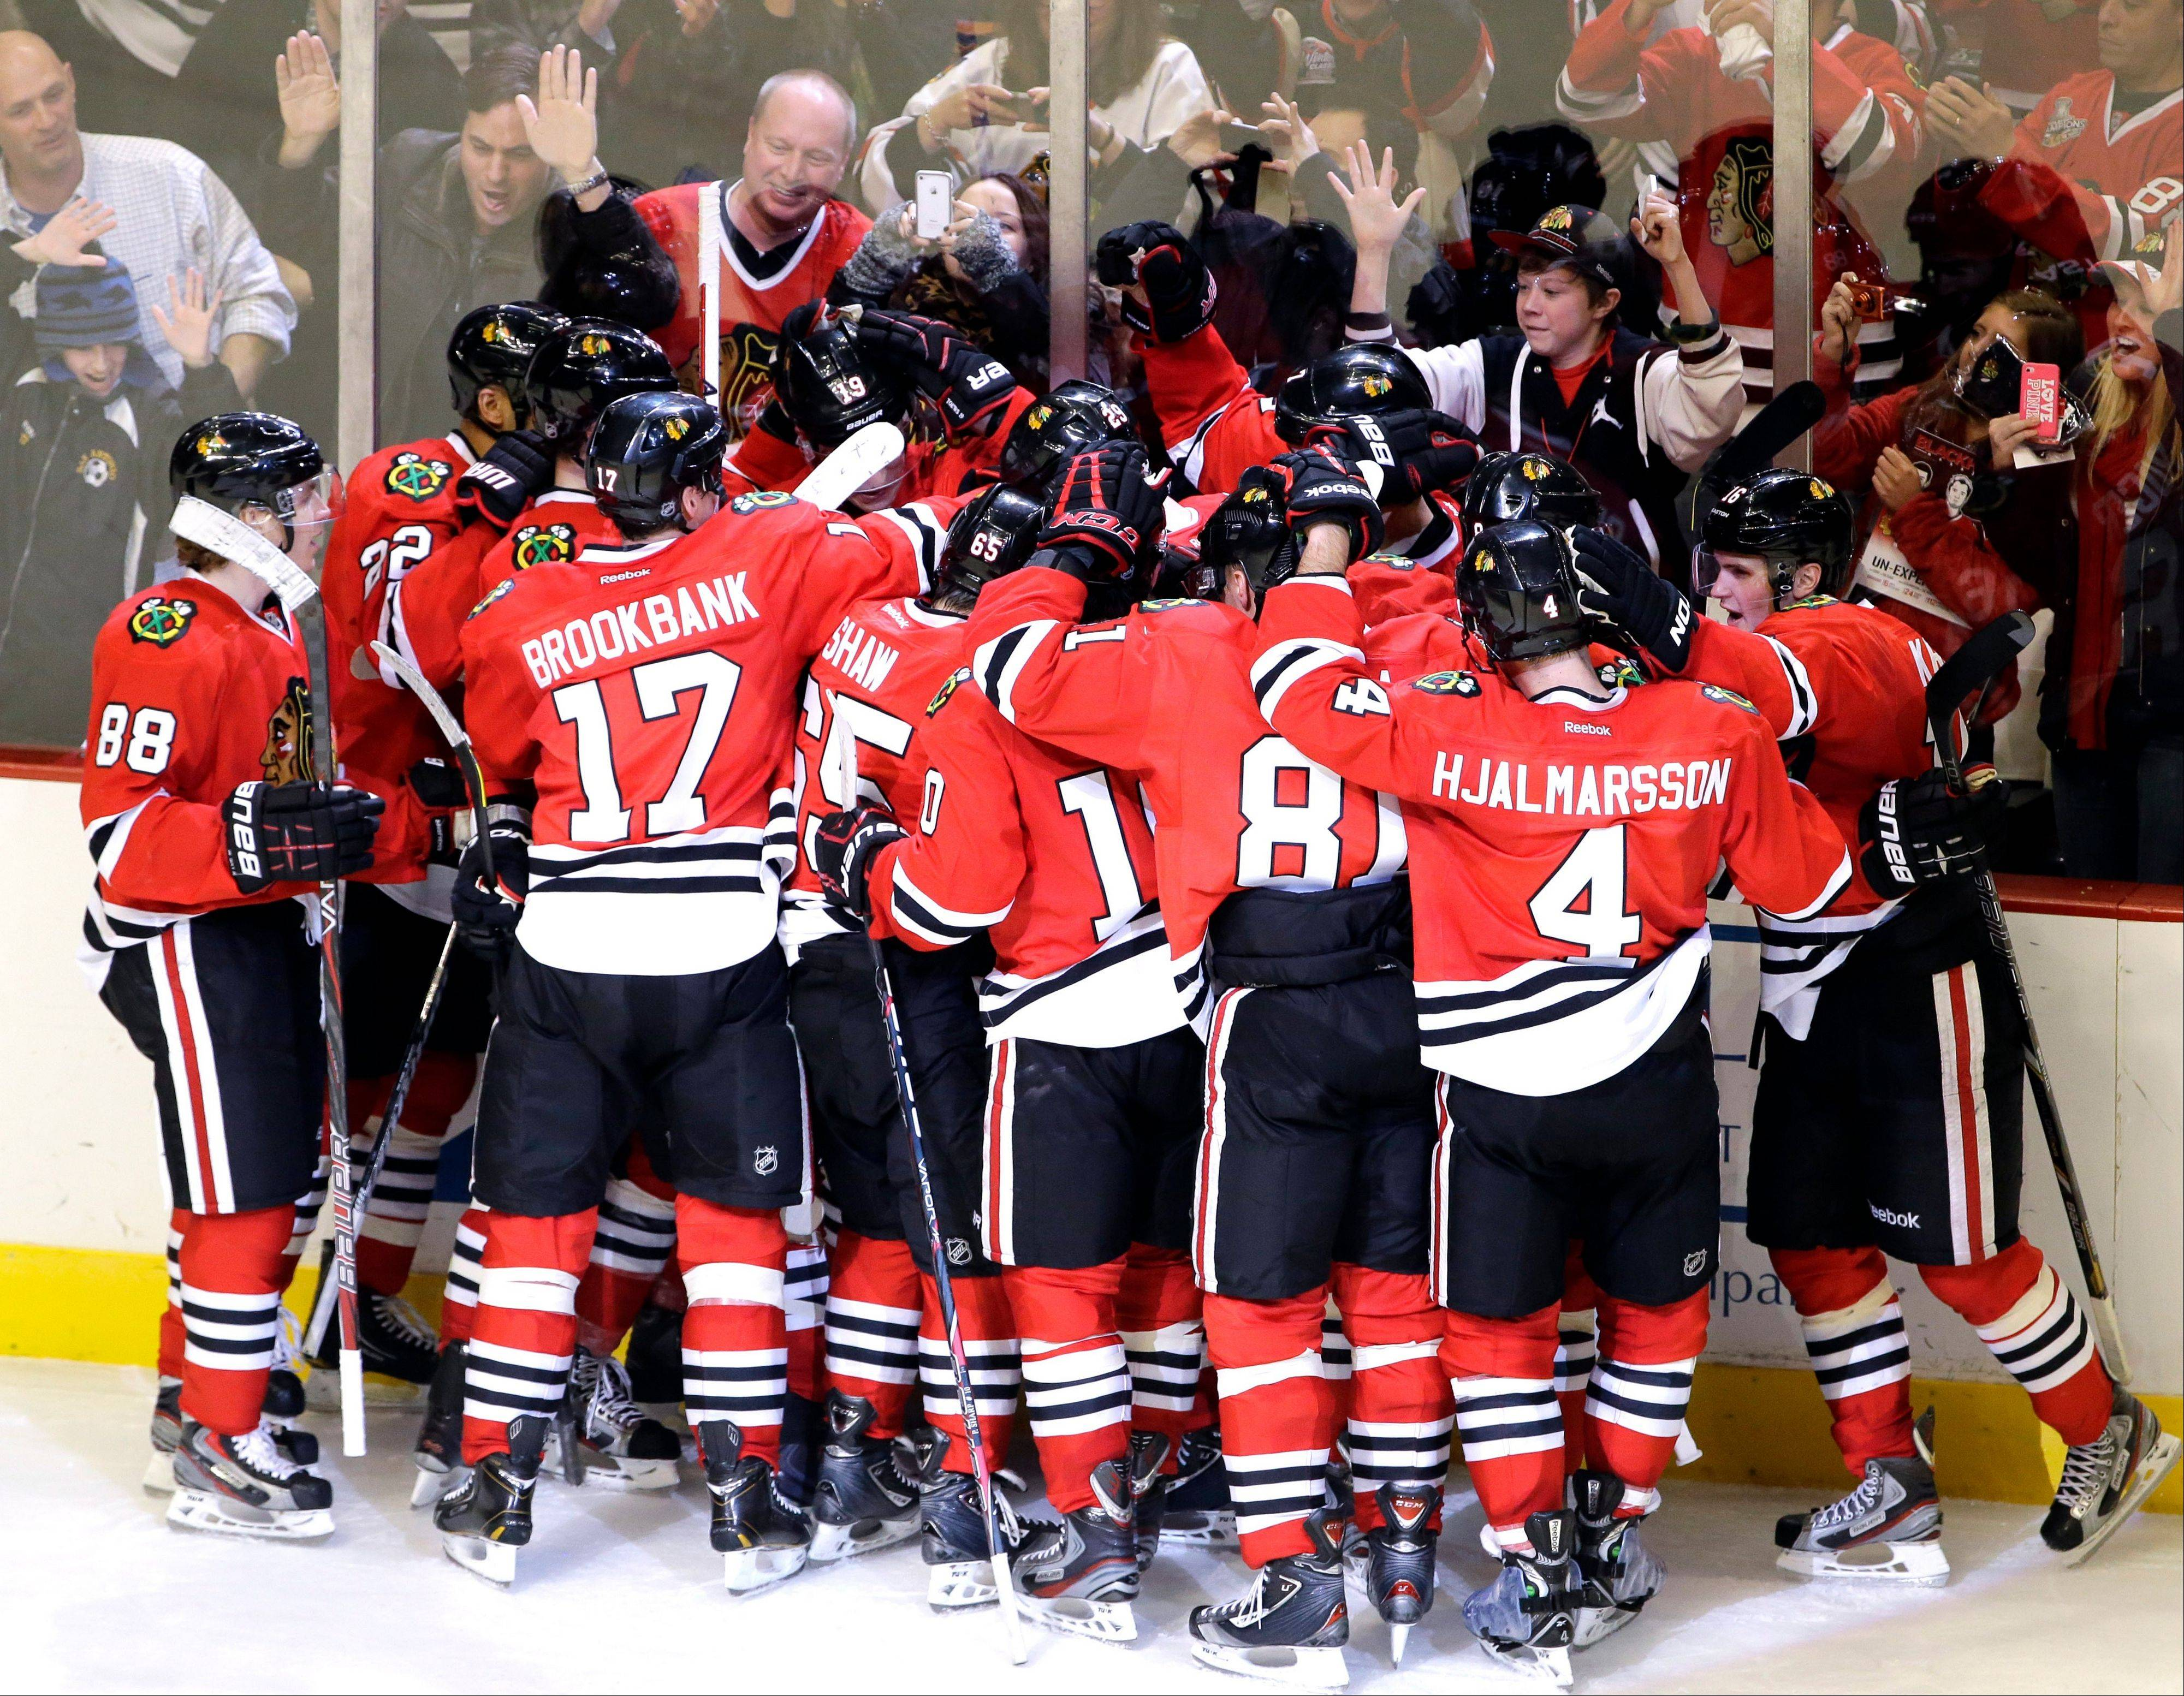 Chicago Blackhawks' Brent Seabrook celebrates with teammates after scoring his game-winning goal during overtime.